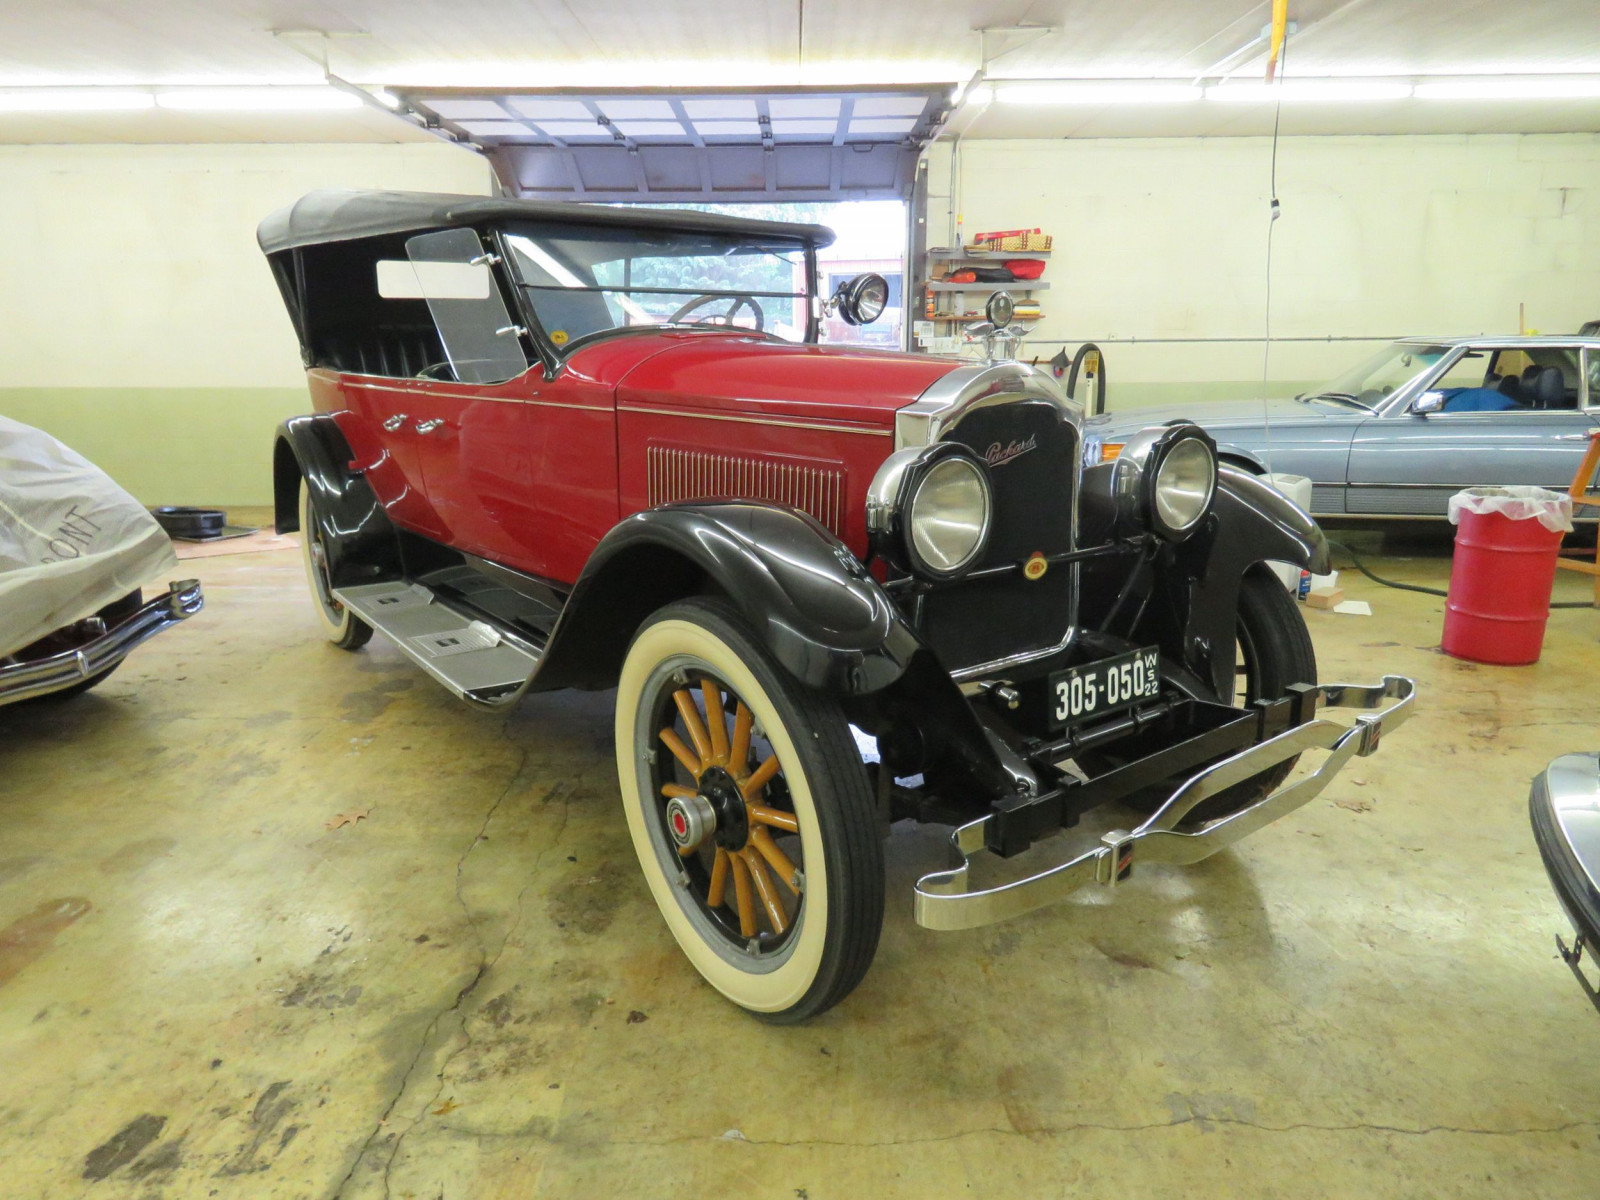 1922 Packard Series 126 Single Six touring Car - Image 2